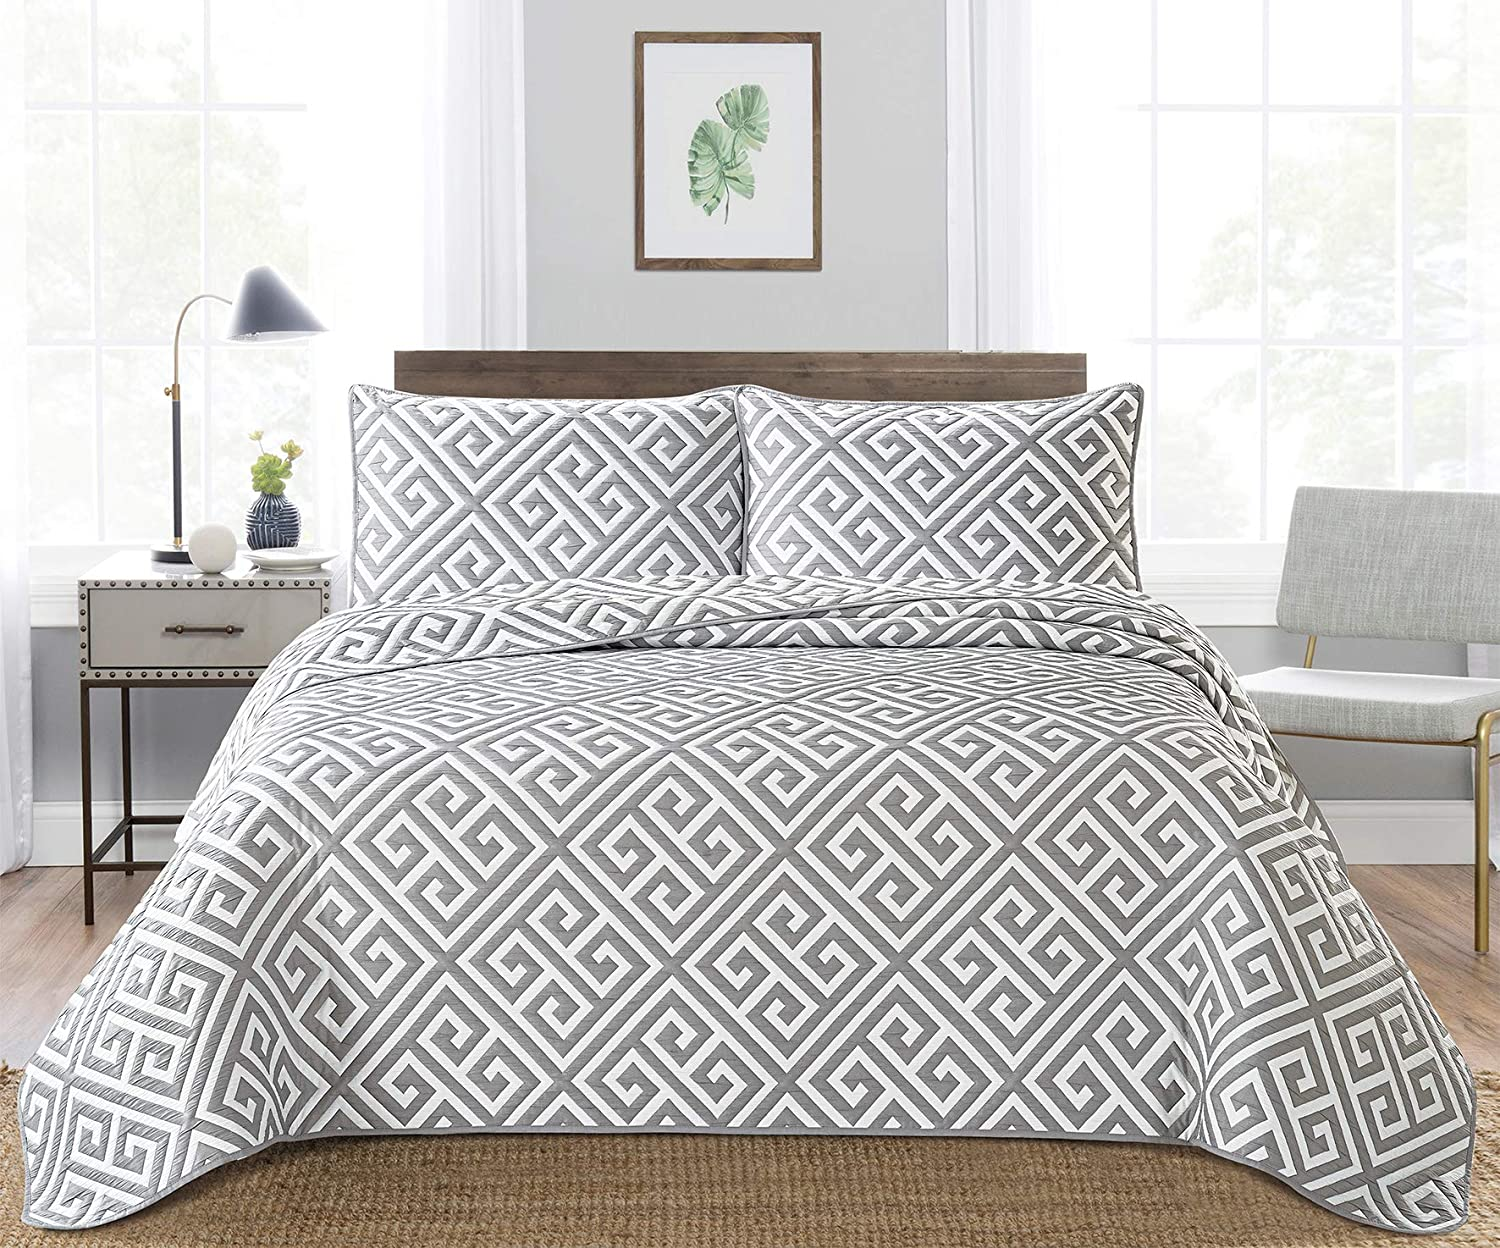 Bedding 3-Piece Washed Quilt Bedspread Coverlet Queen San Francisco Mall Set 2021 new Grey